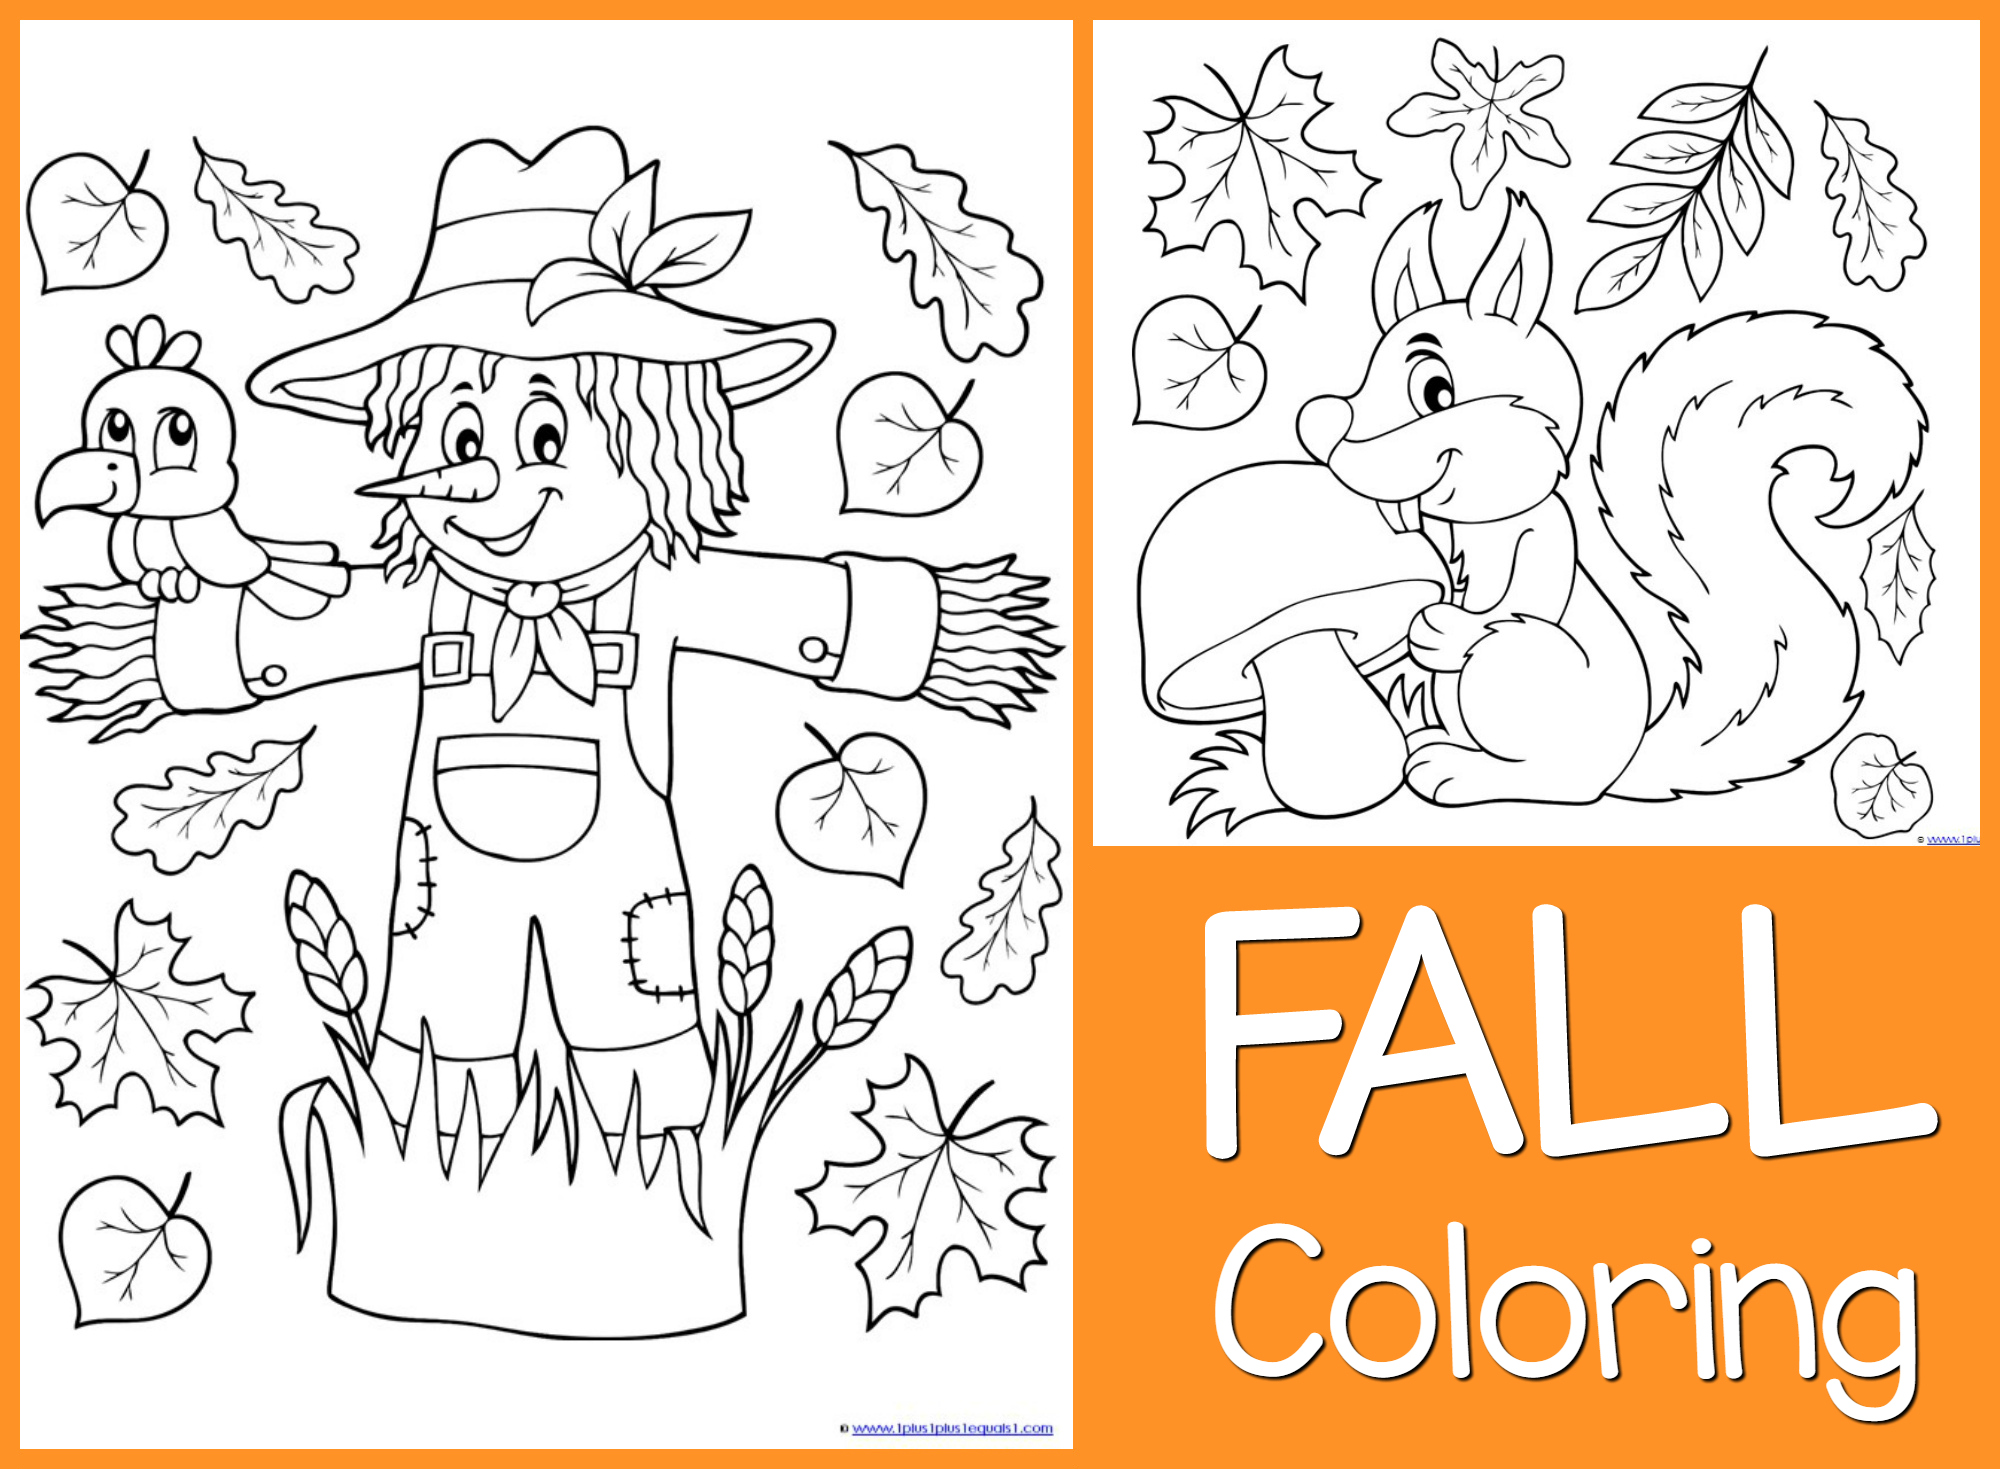 Uncategorized Coloring Pictures To Color just color free coloring printables